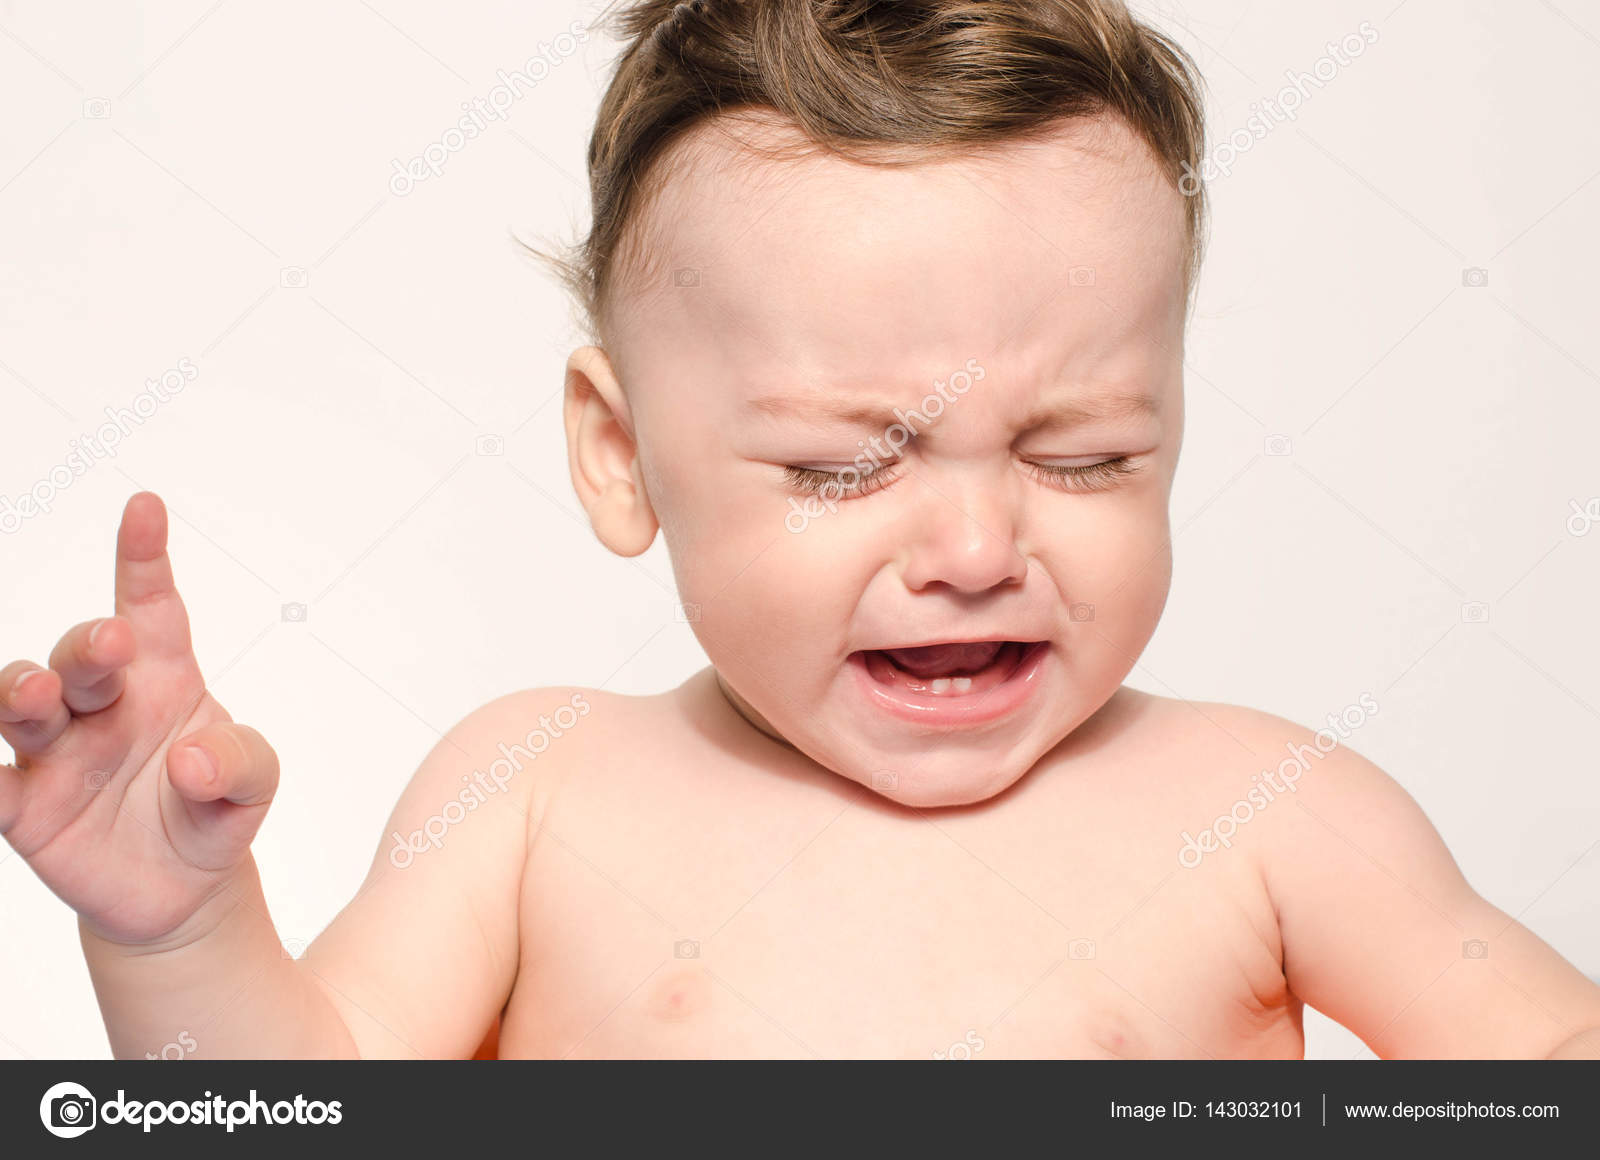 cute naked baby boy crying. little child in pain, suffering